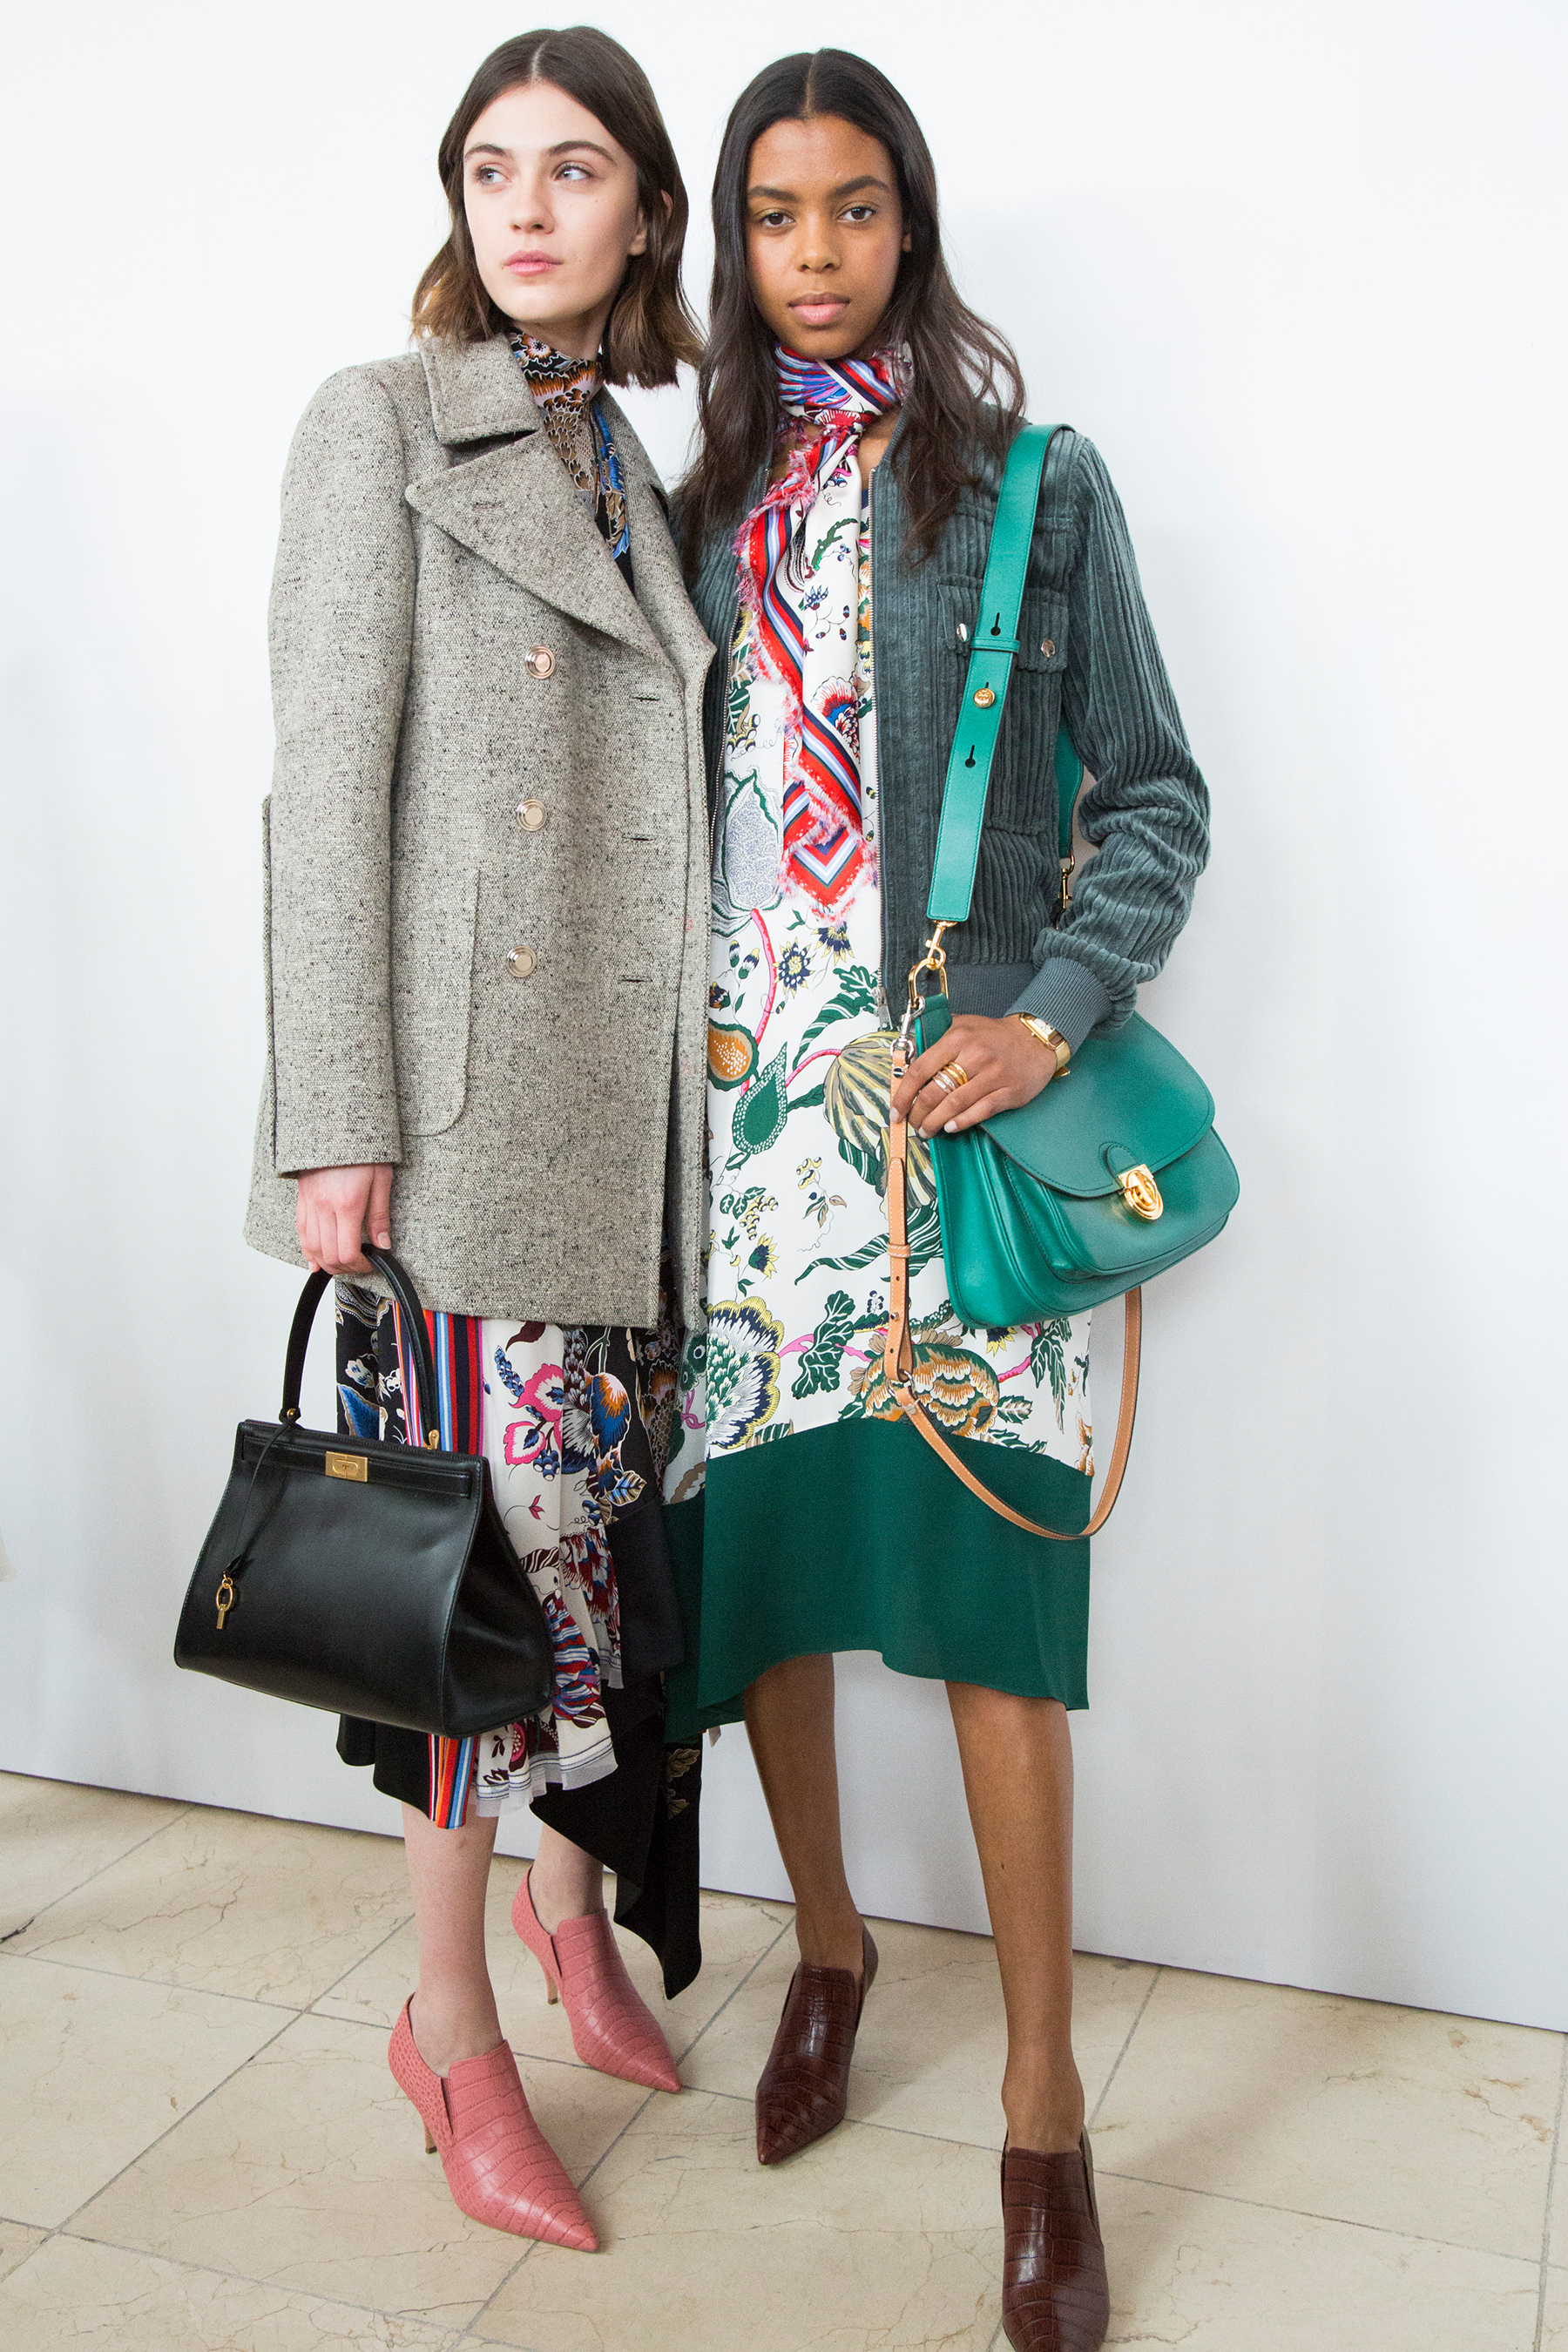 b24b9074976 Tory Burch Fall 2018 Fashion Show Backstage - The Impression